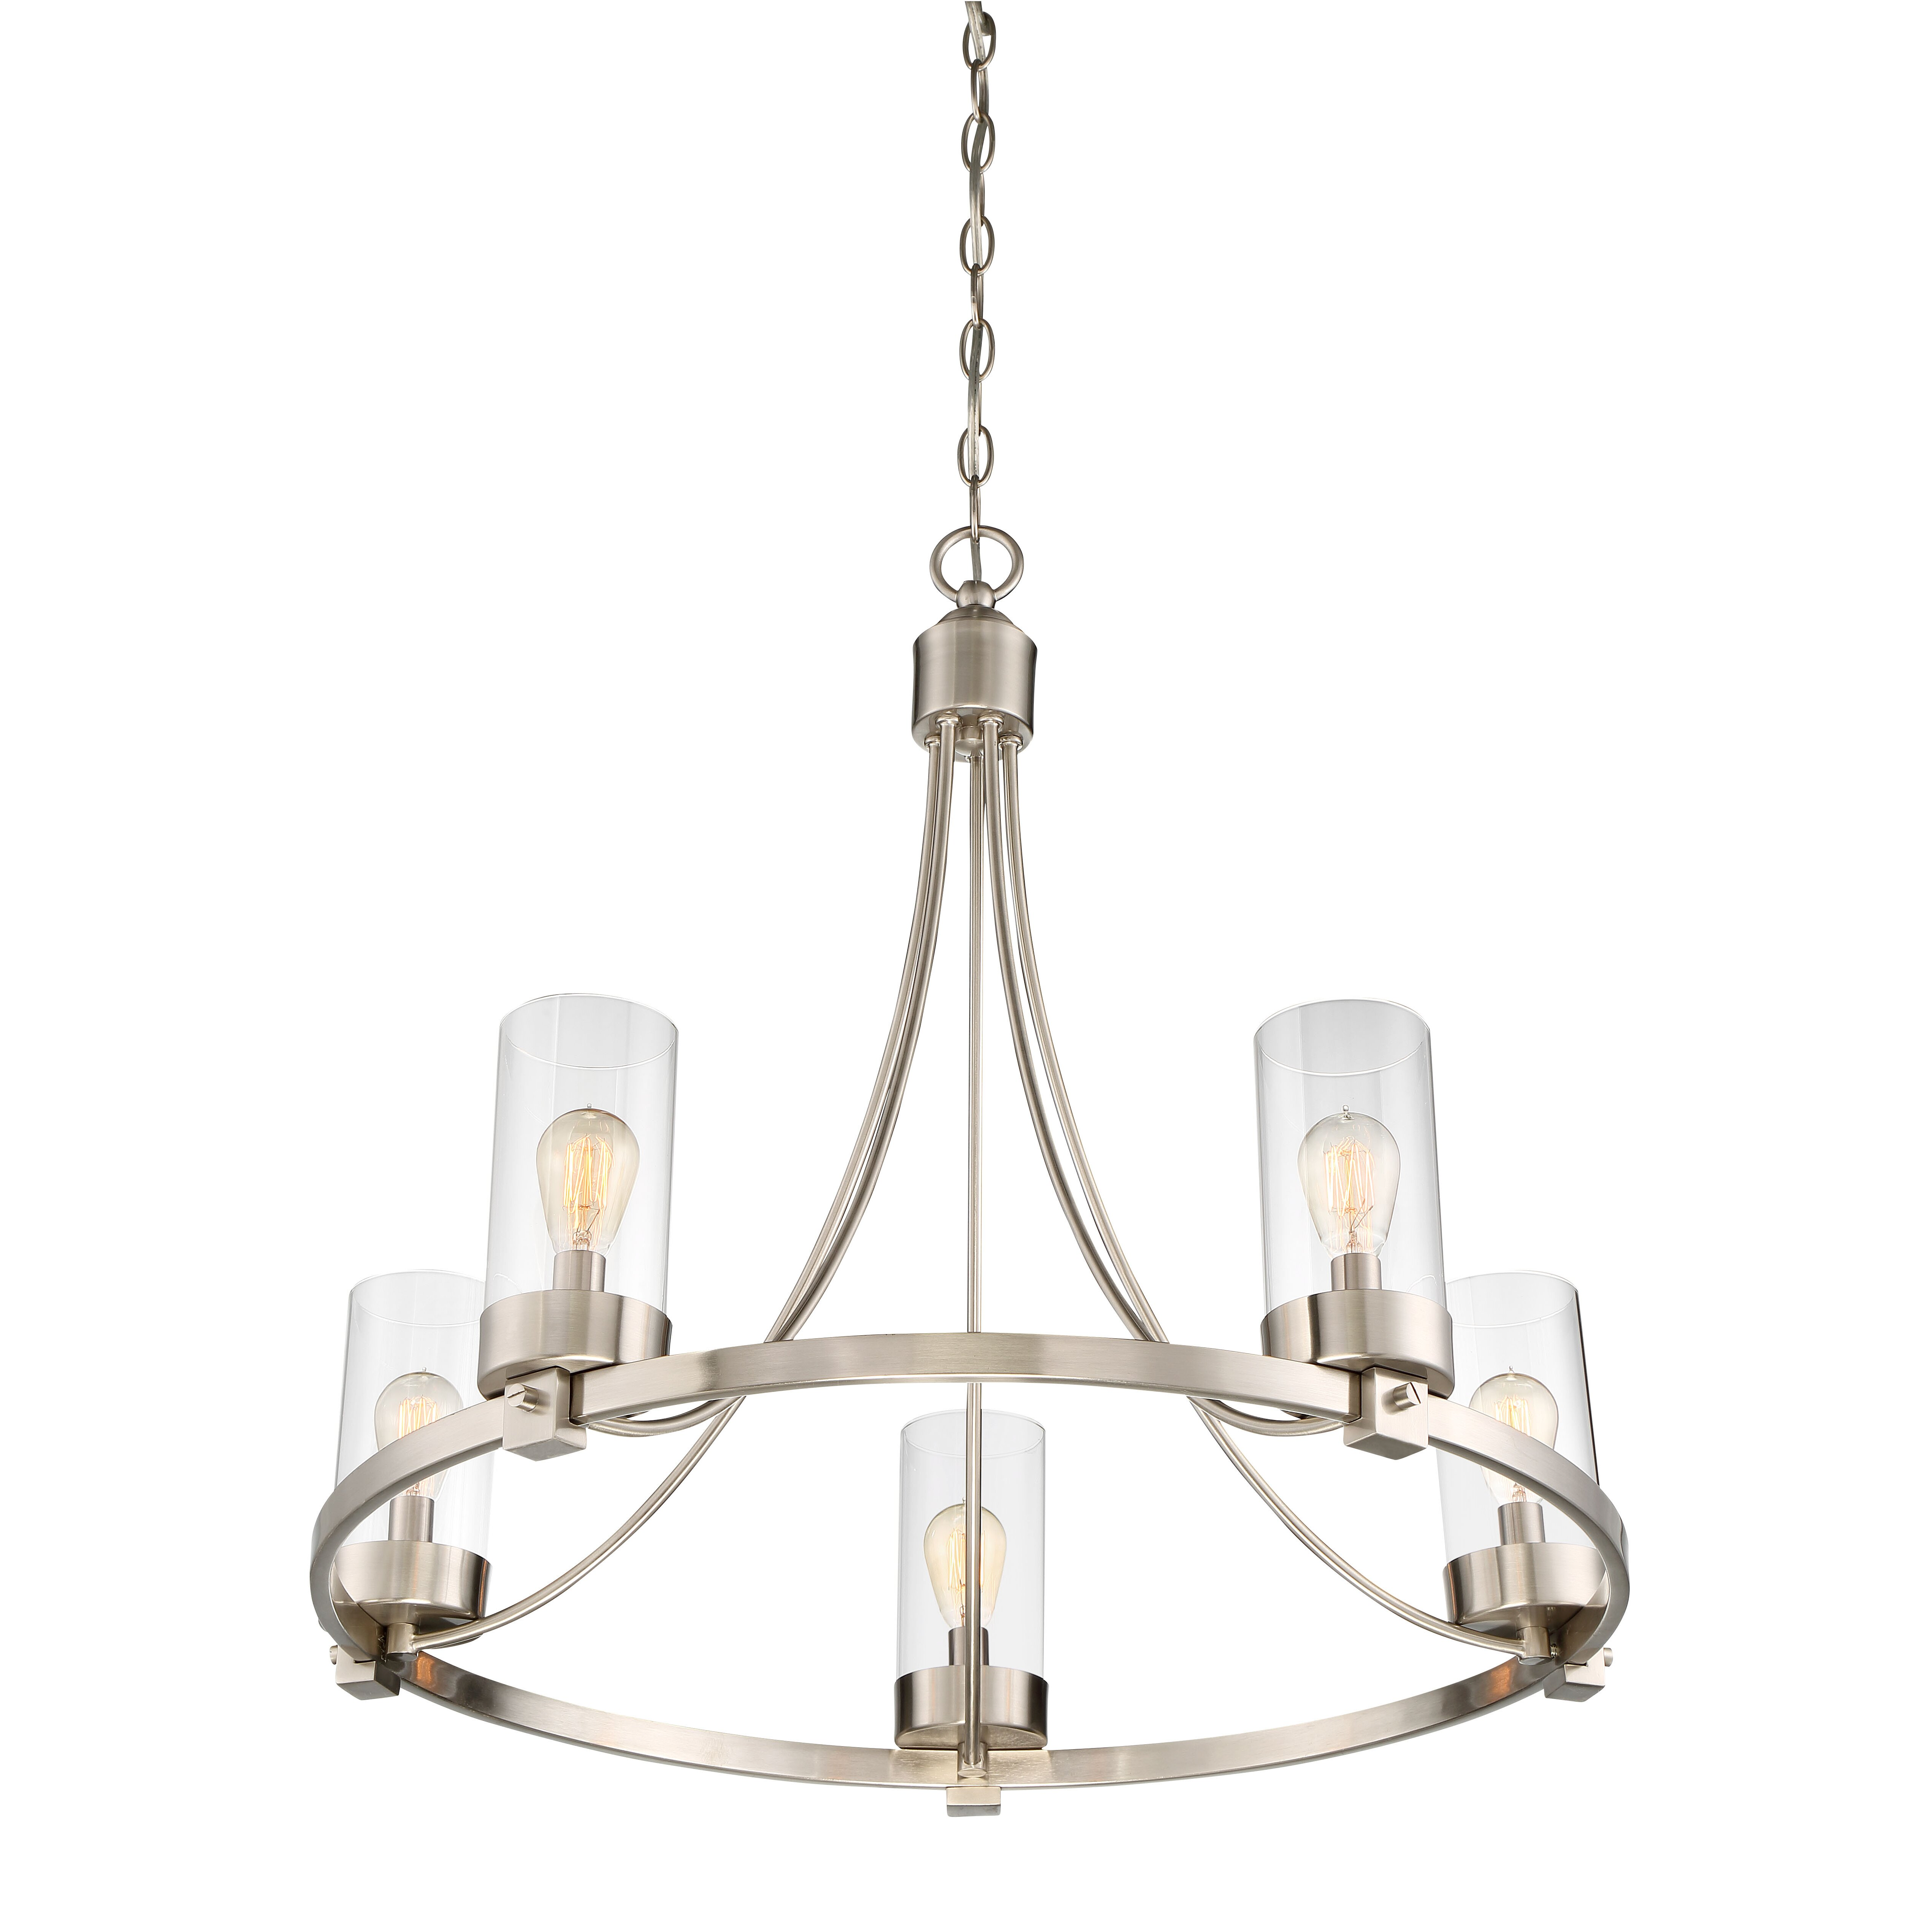 Laurel Foundry Modern Farmhouse Agave 5 Light Candle Chandelier u0026 Reviews : Wayfair